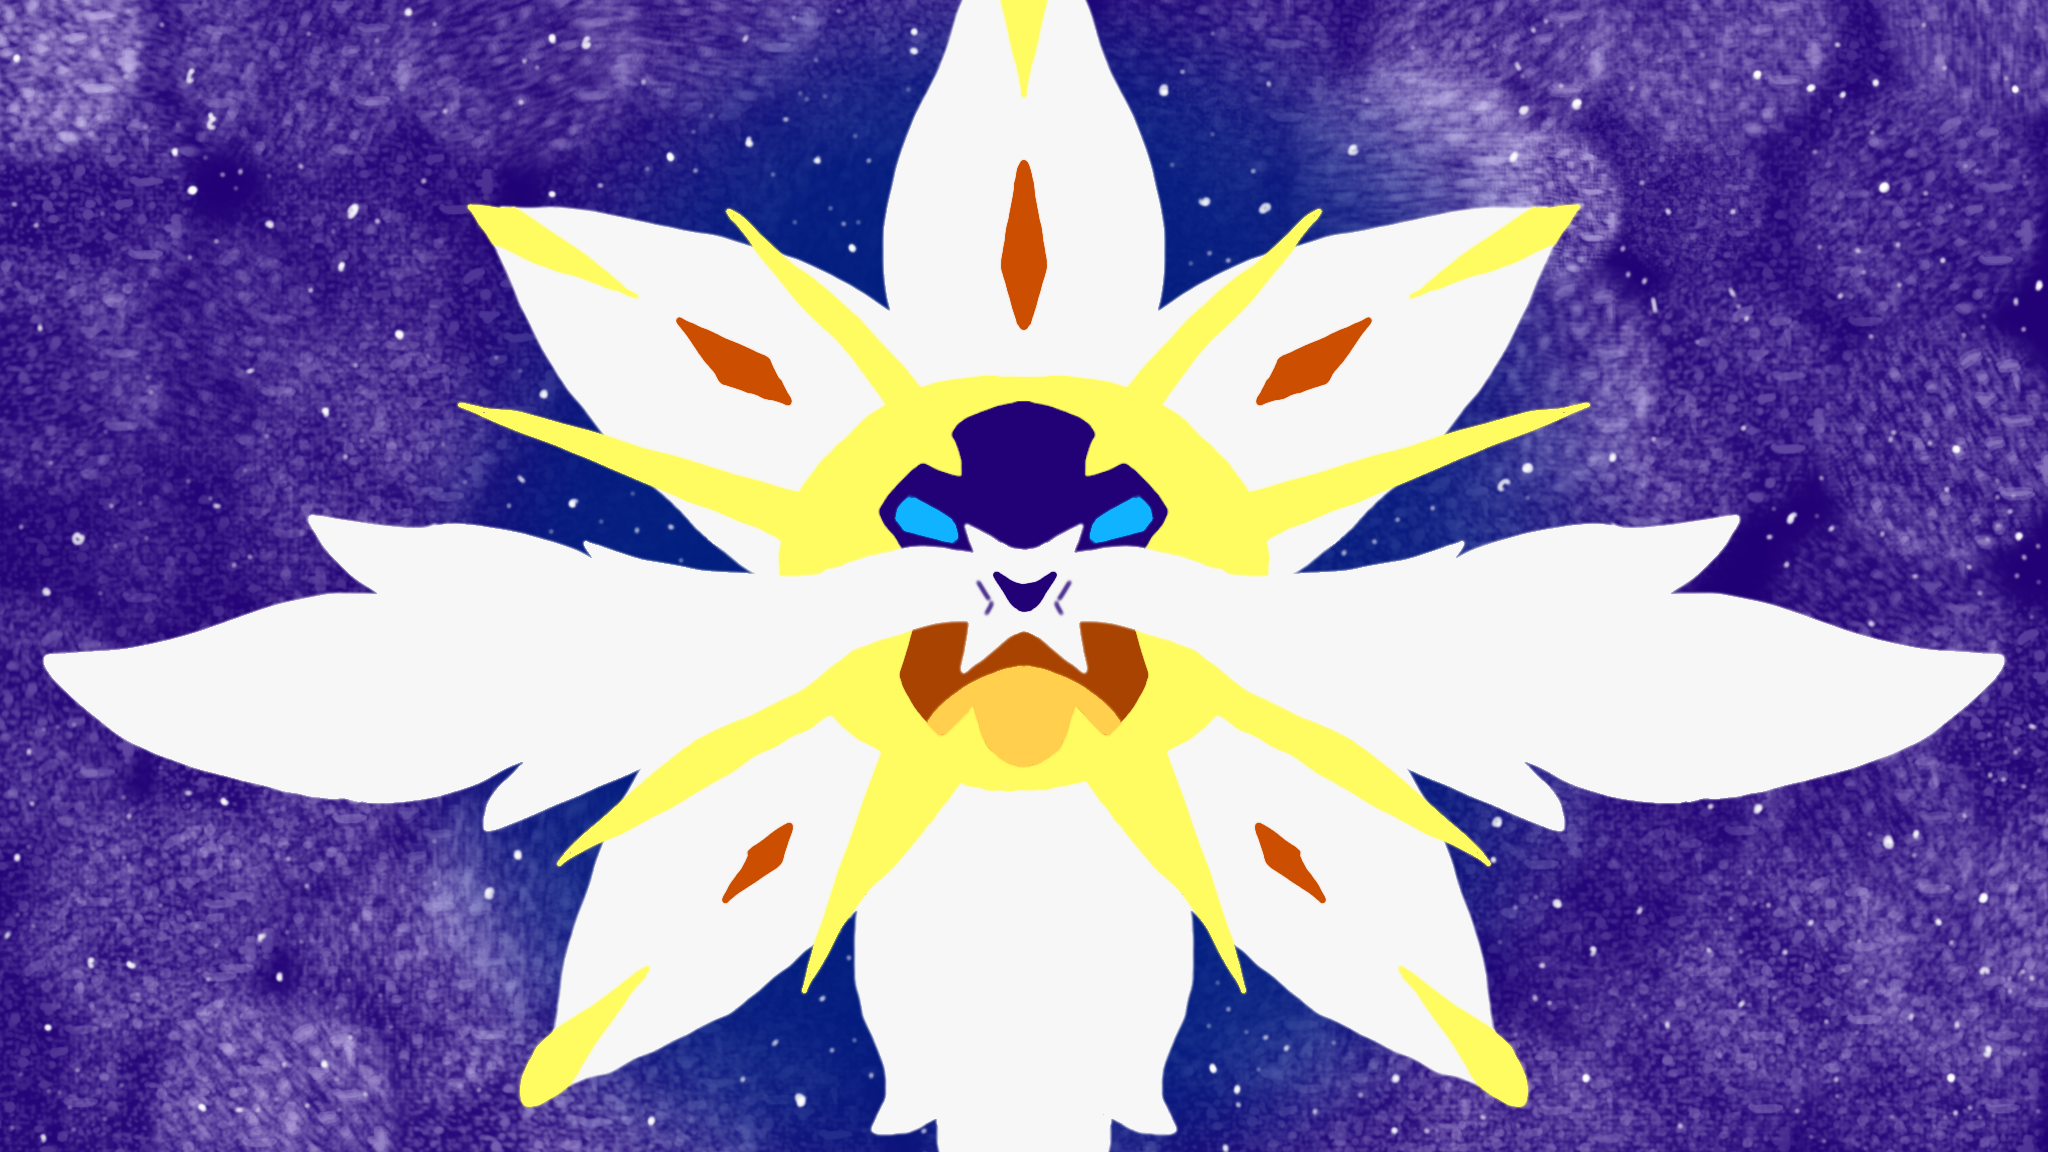 Solgaleo Background